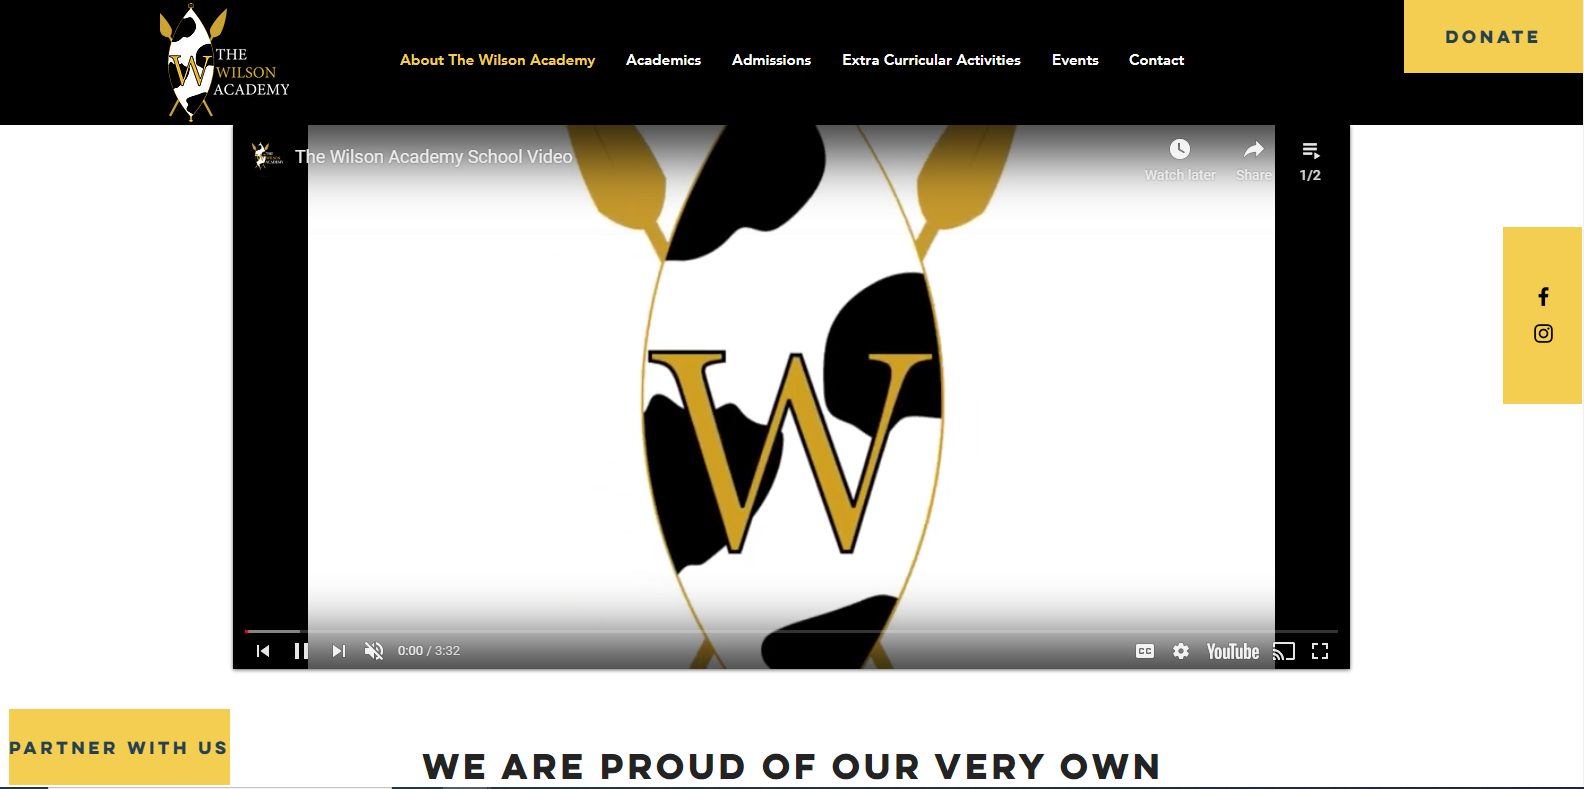 The Wilson Academy Website Image